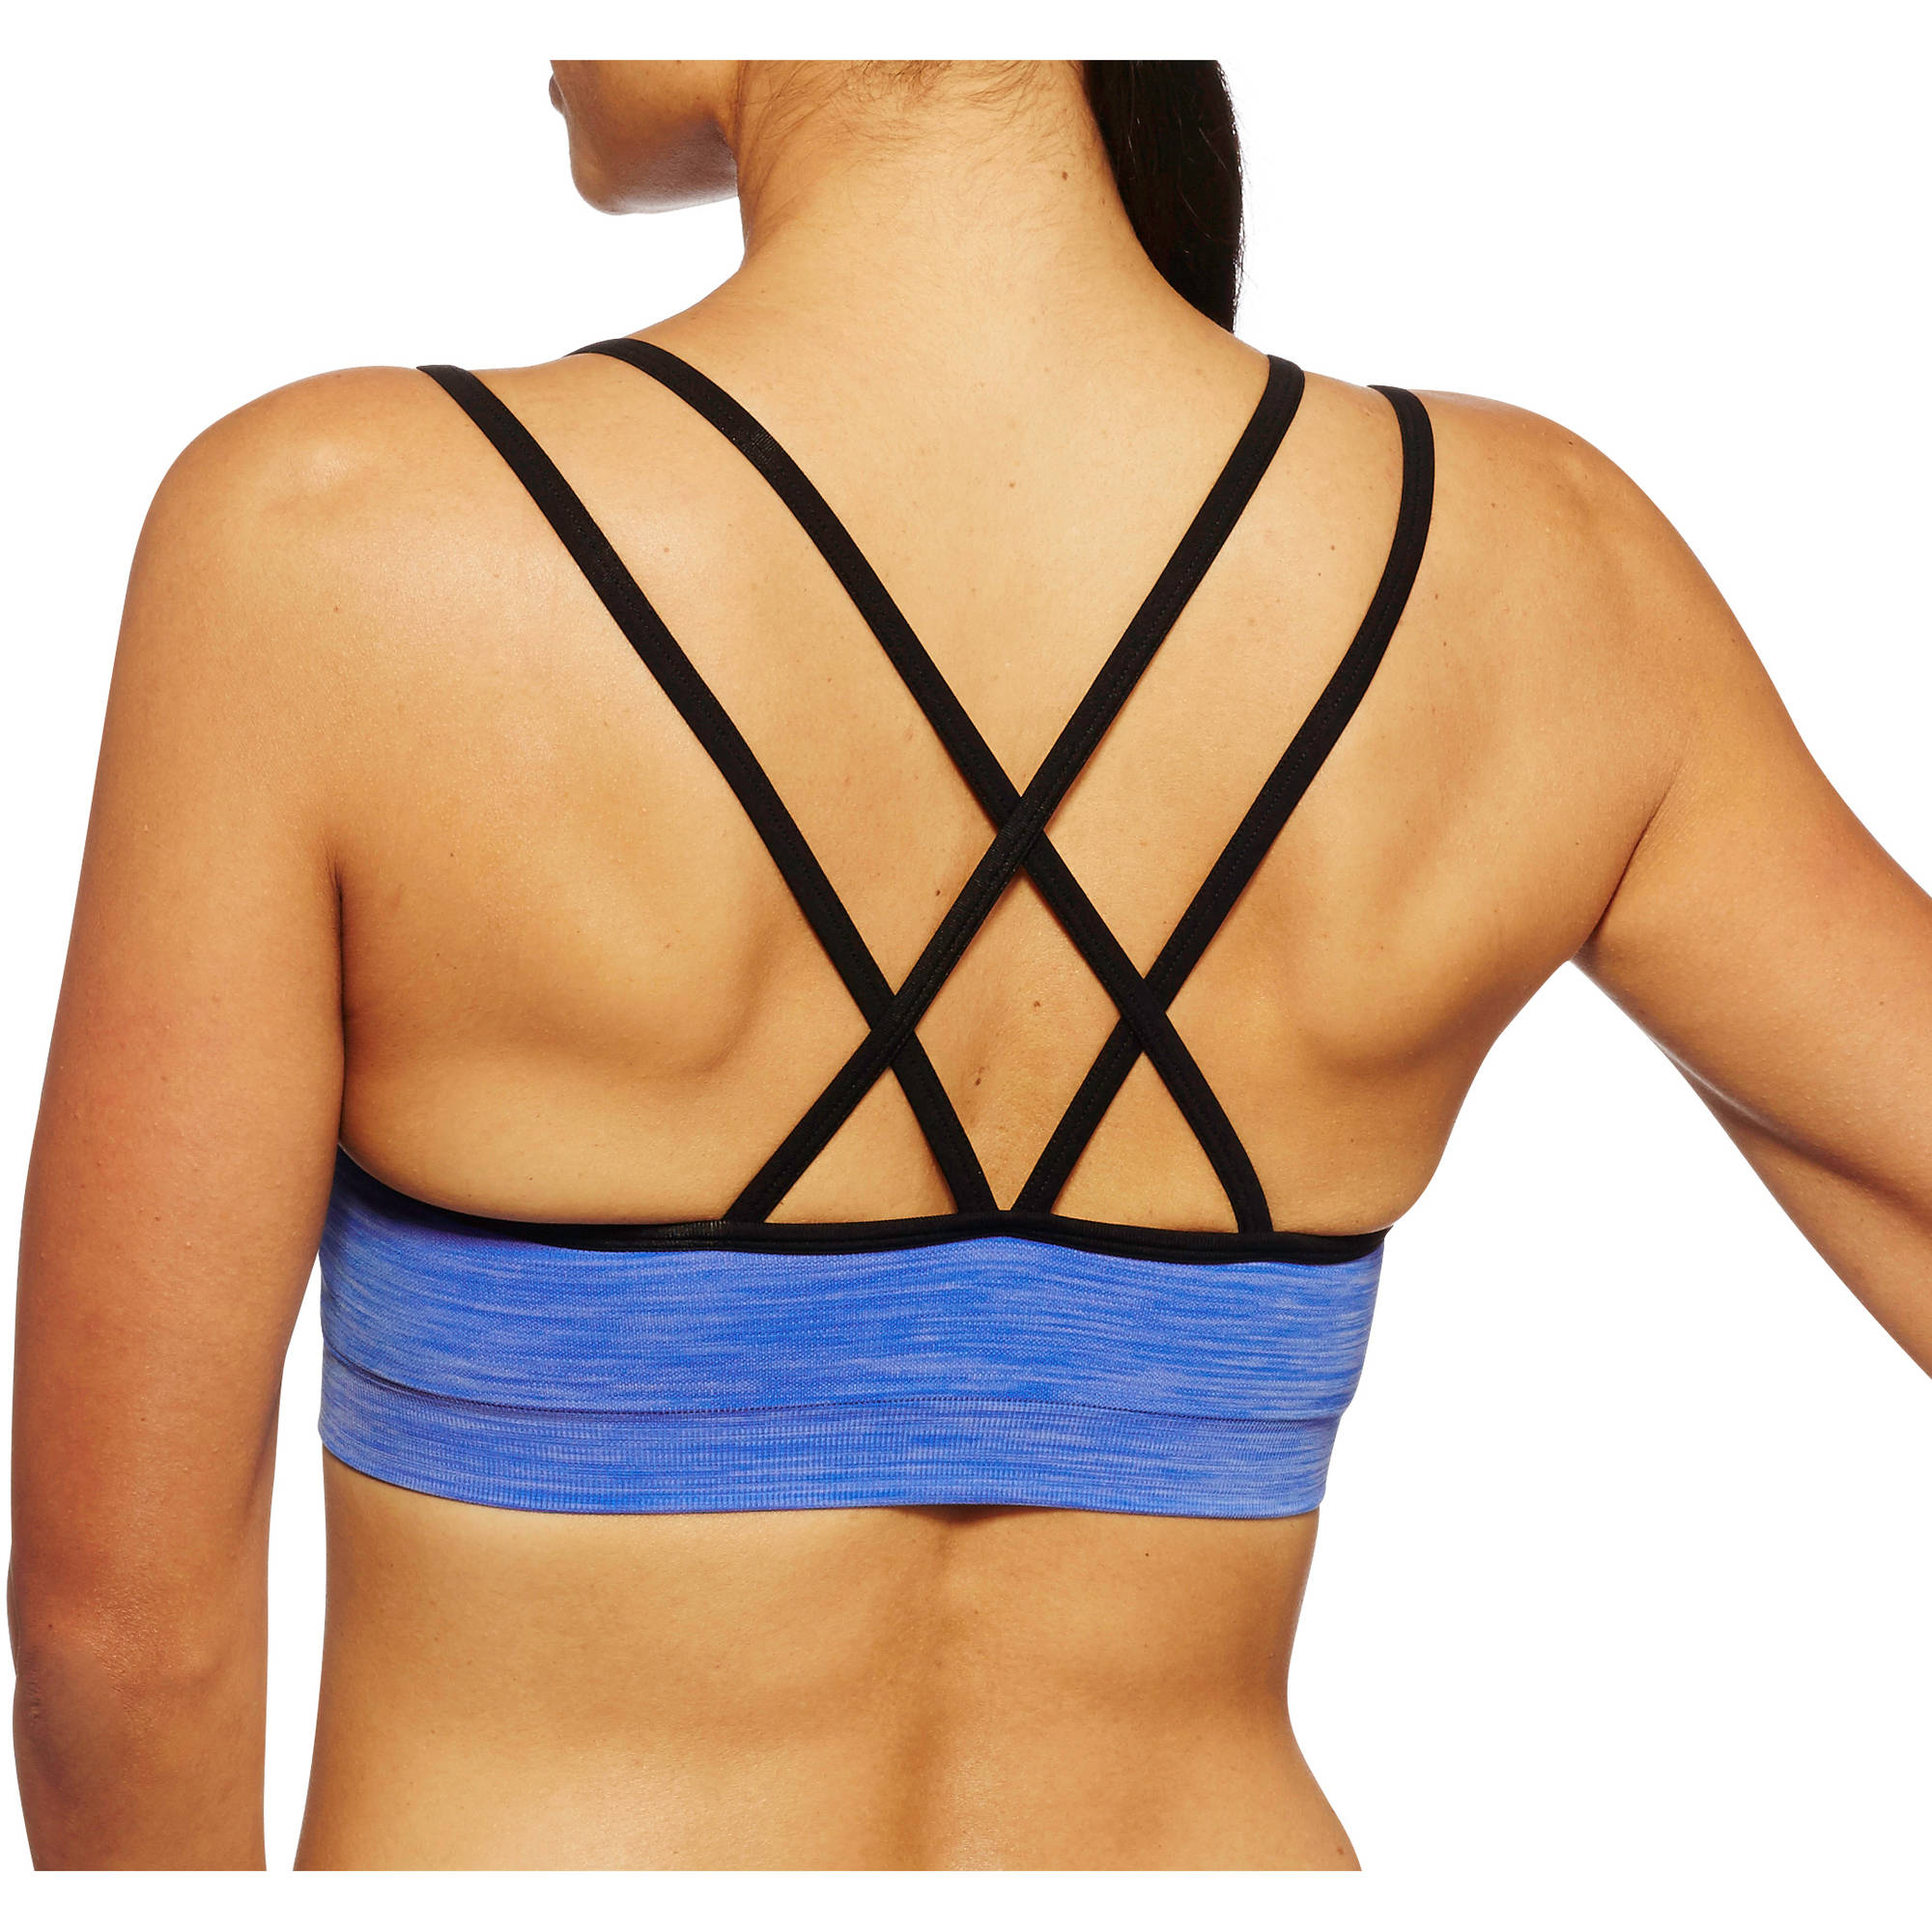 ce063cbb31ef3 Women s Active Seamless Strappy Back Cami Sports Bra – Walmart ...